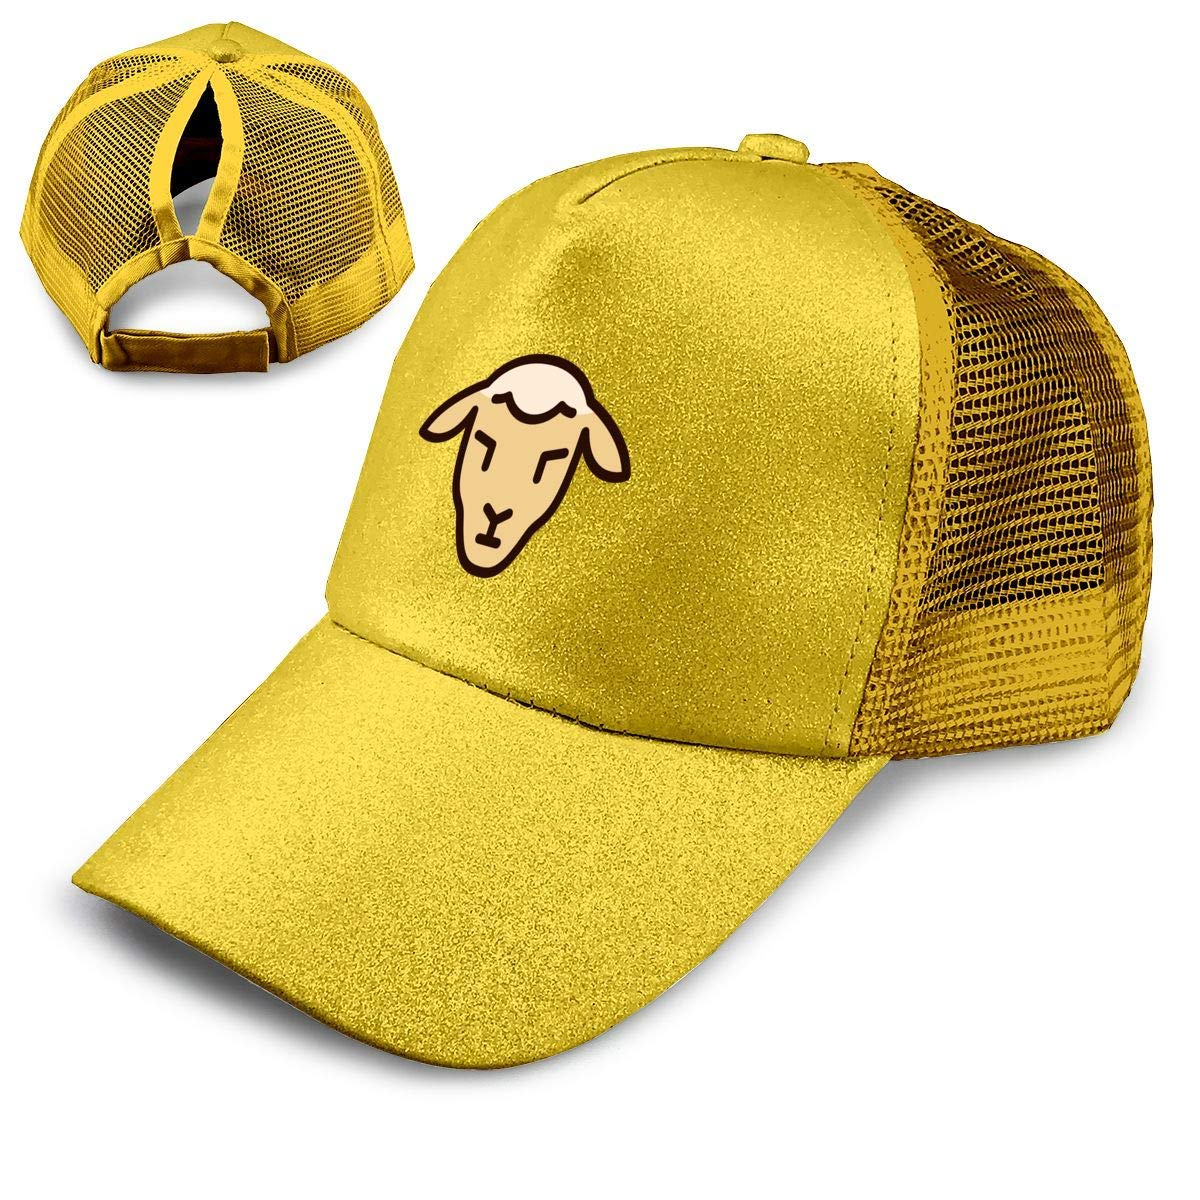 bef154d5568a3a Get Quotations · Sheep Religion Christianity Ponytail Hats for Women Messy  Trucker Hat Plain Ponytail Baseball Visor Cap